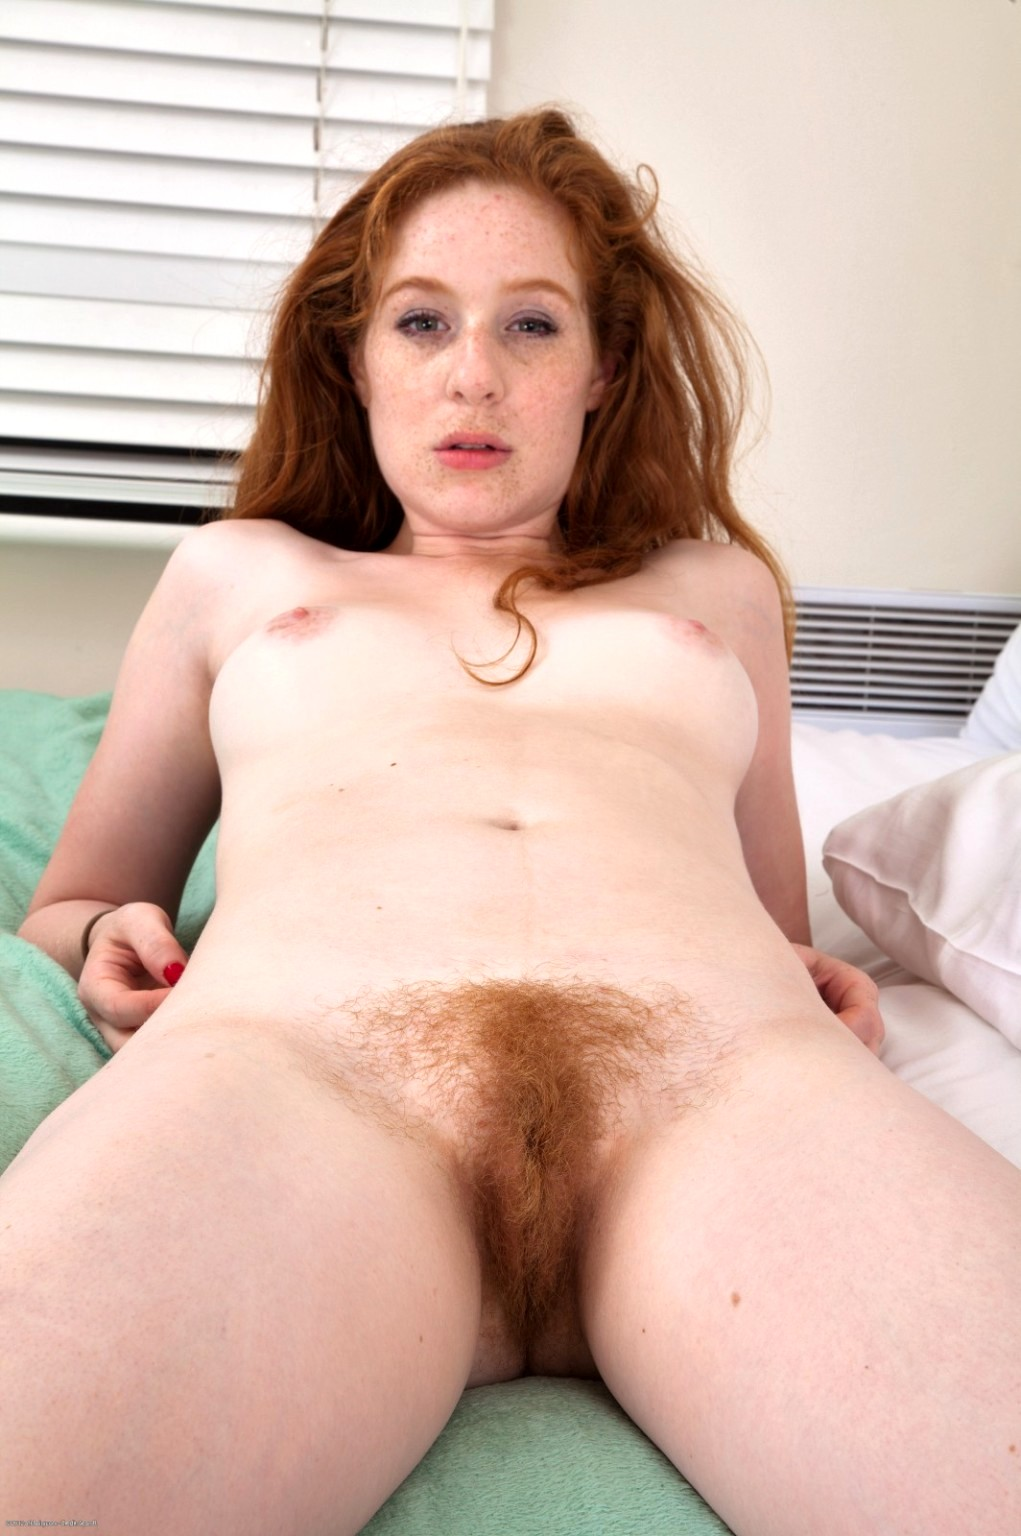 Free redhead red hair sex video-1370